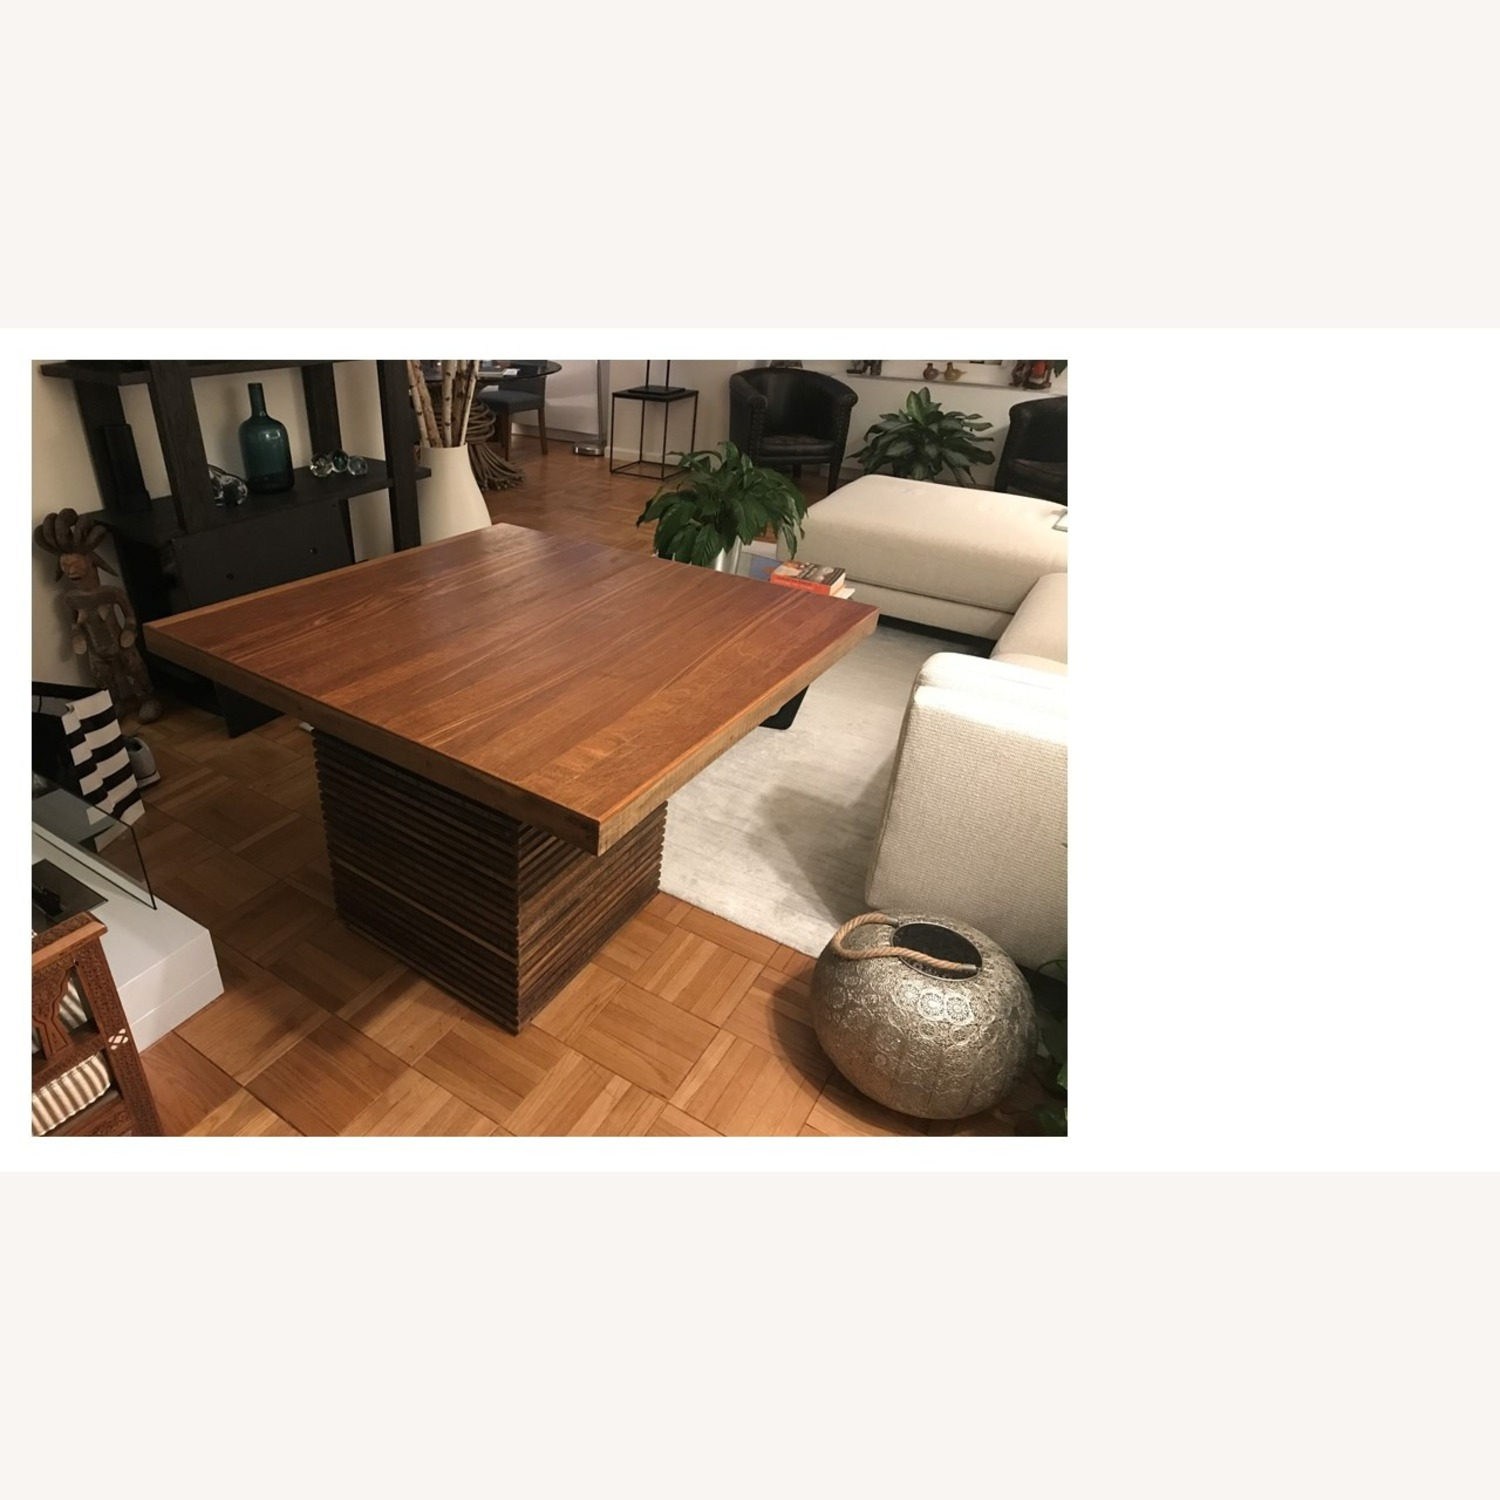 Crate and Barrel Paloma II Square Table - image-1